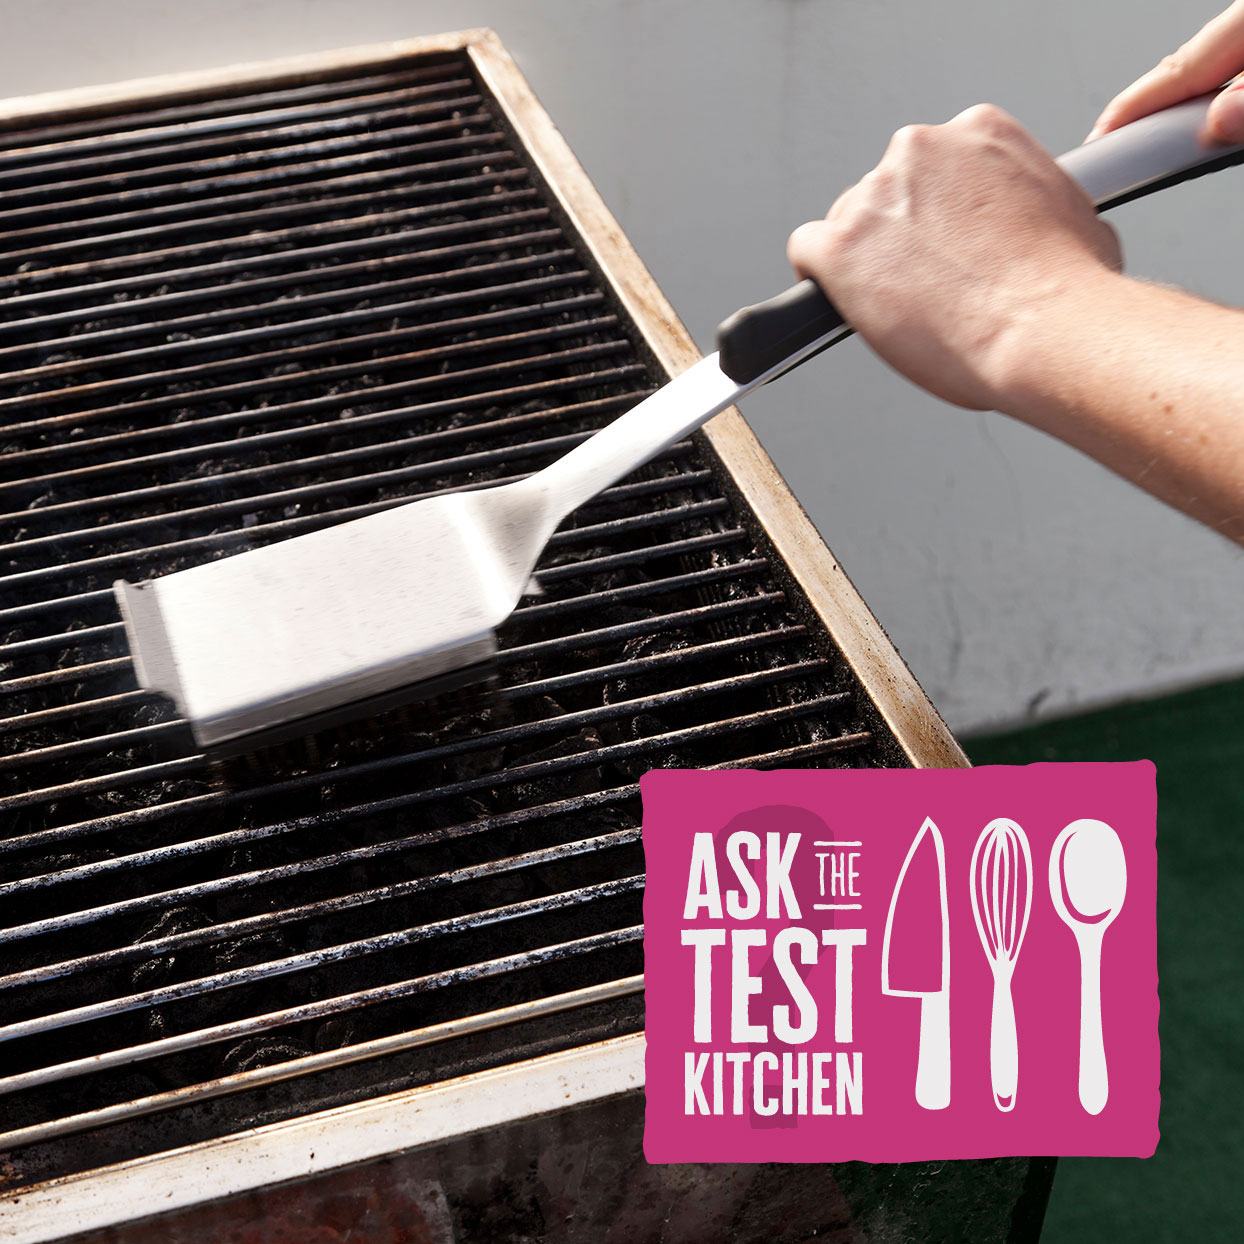 How to Clean a Grill Properly, According to Our Test Kitchen